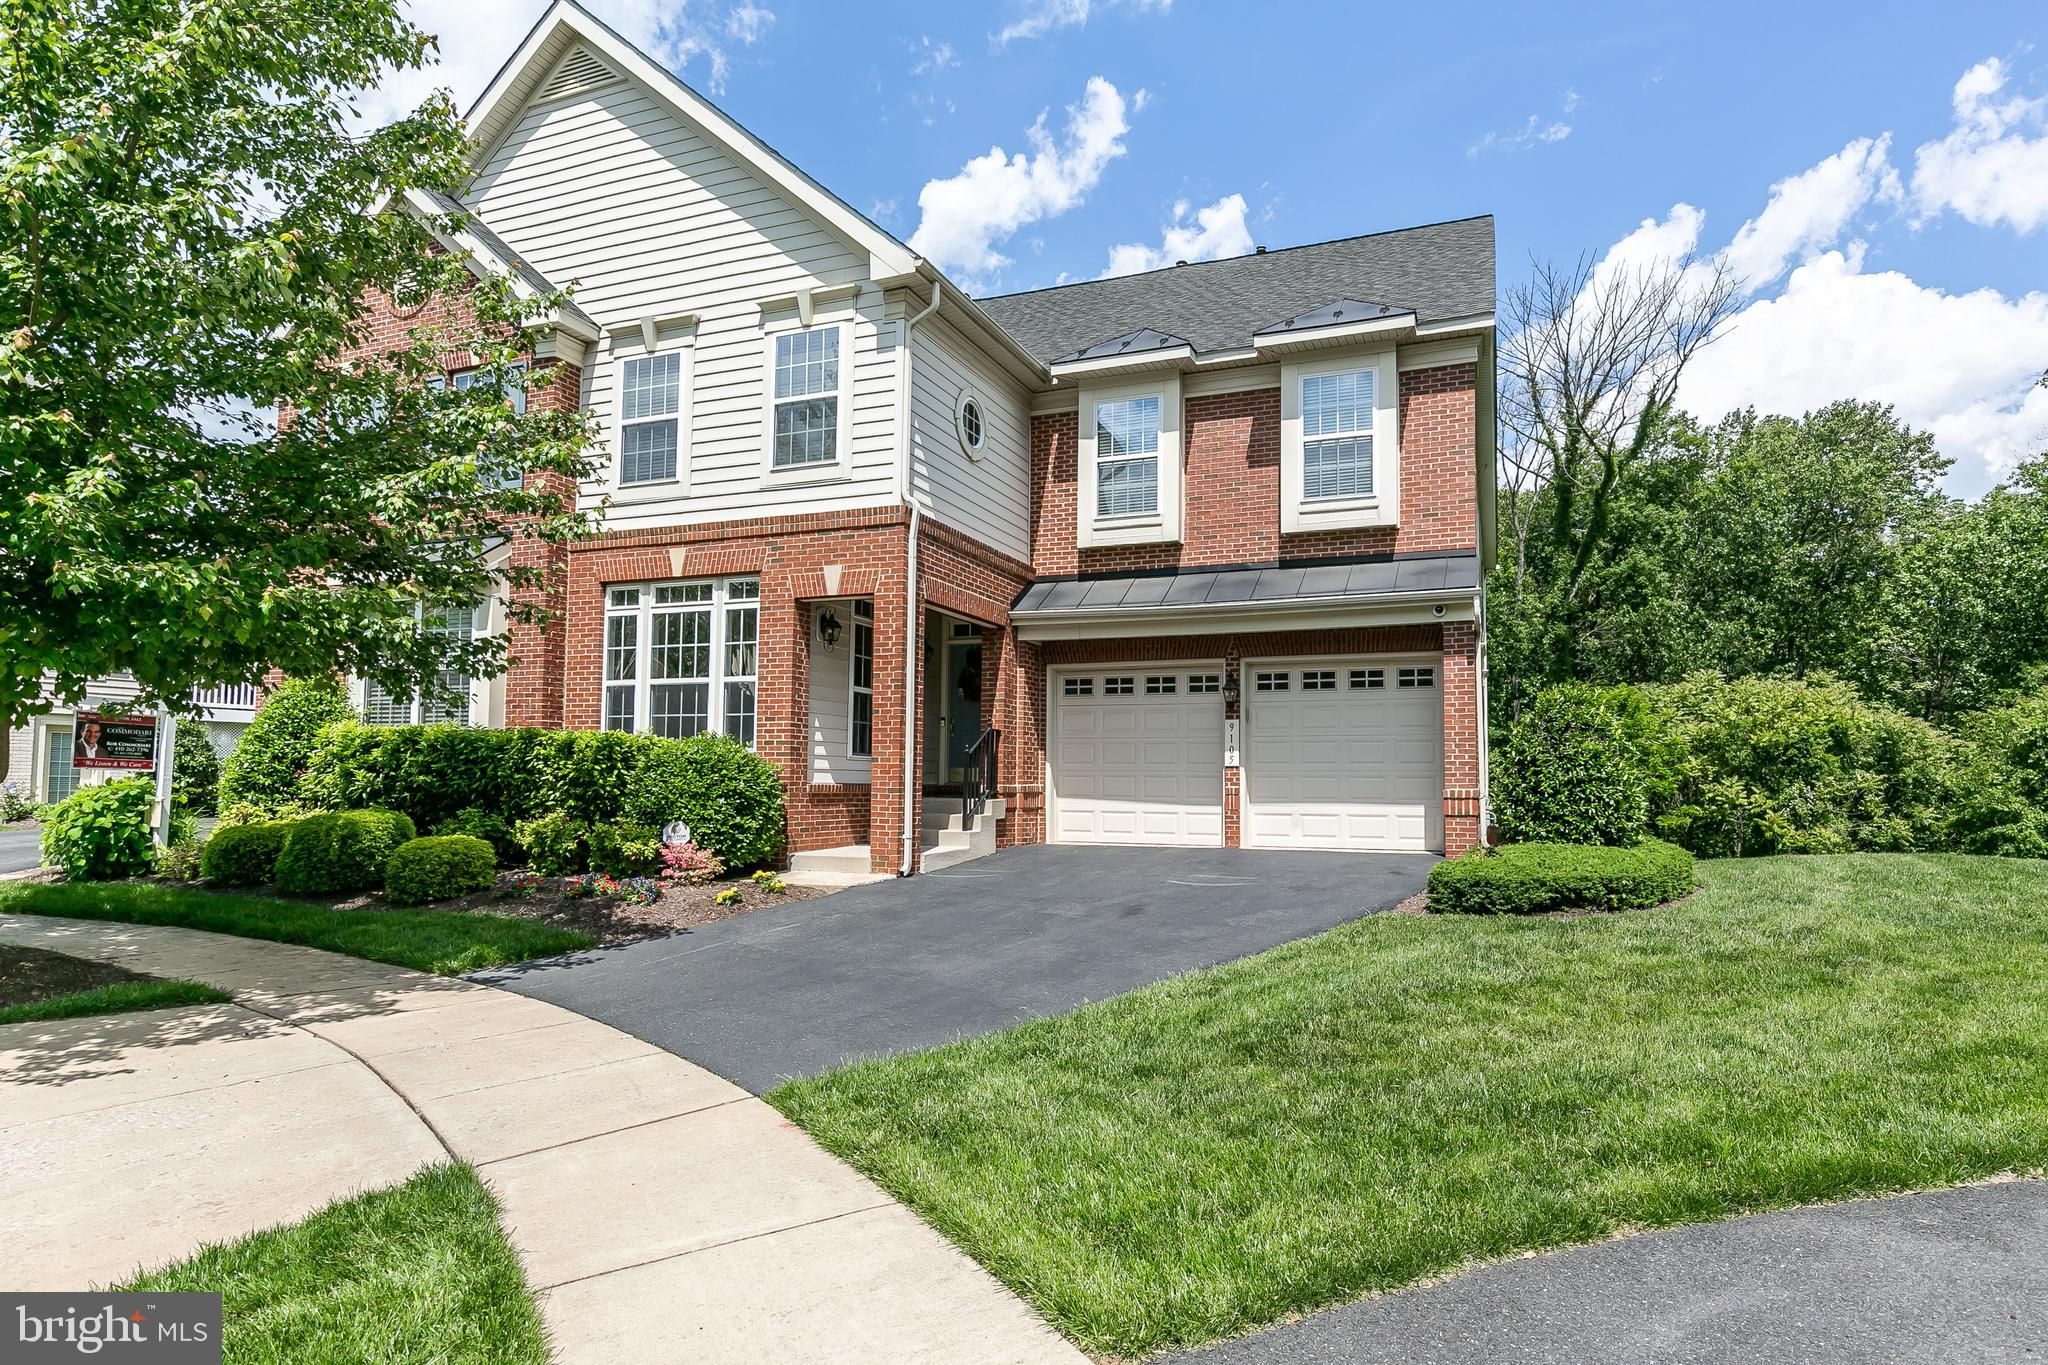 9105 BACKDROP DRIVE, PERRY HALL, MD 21128